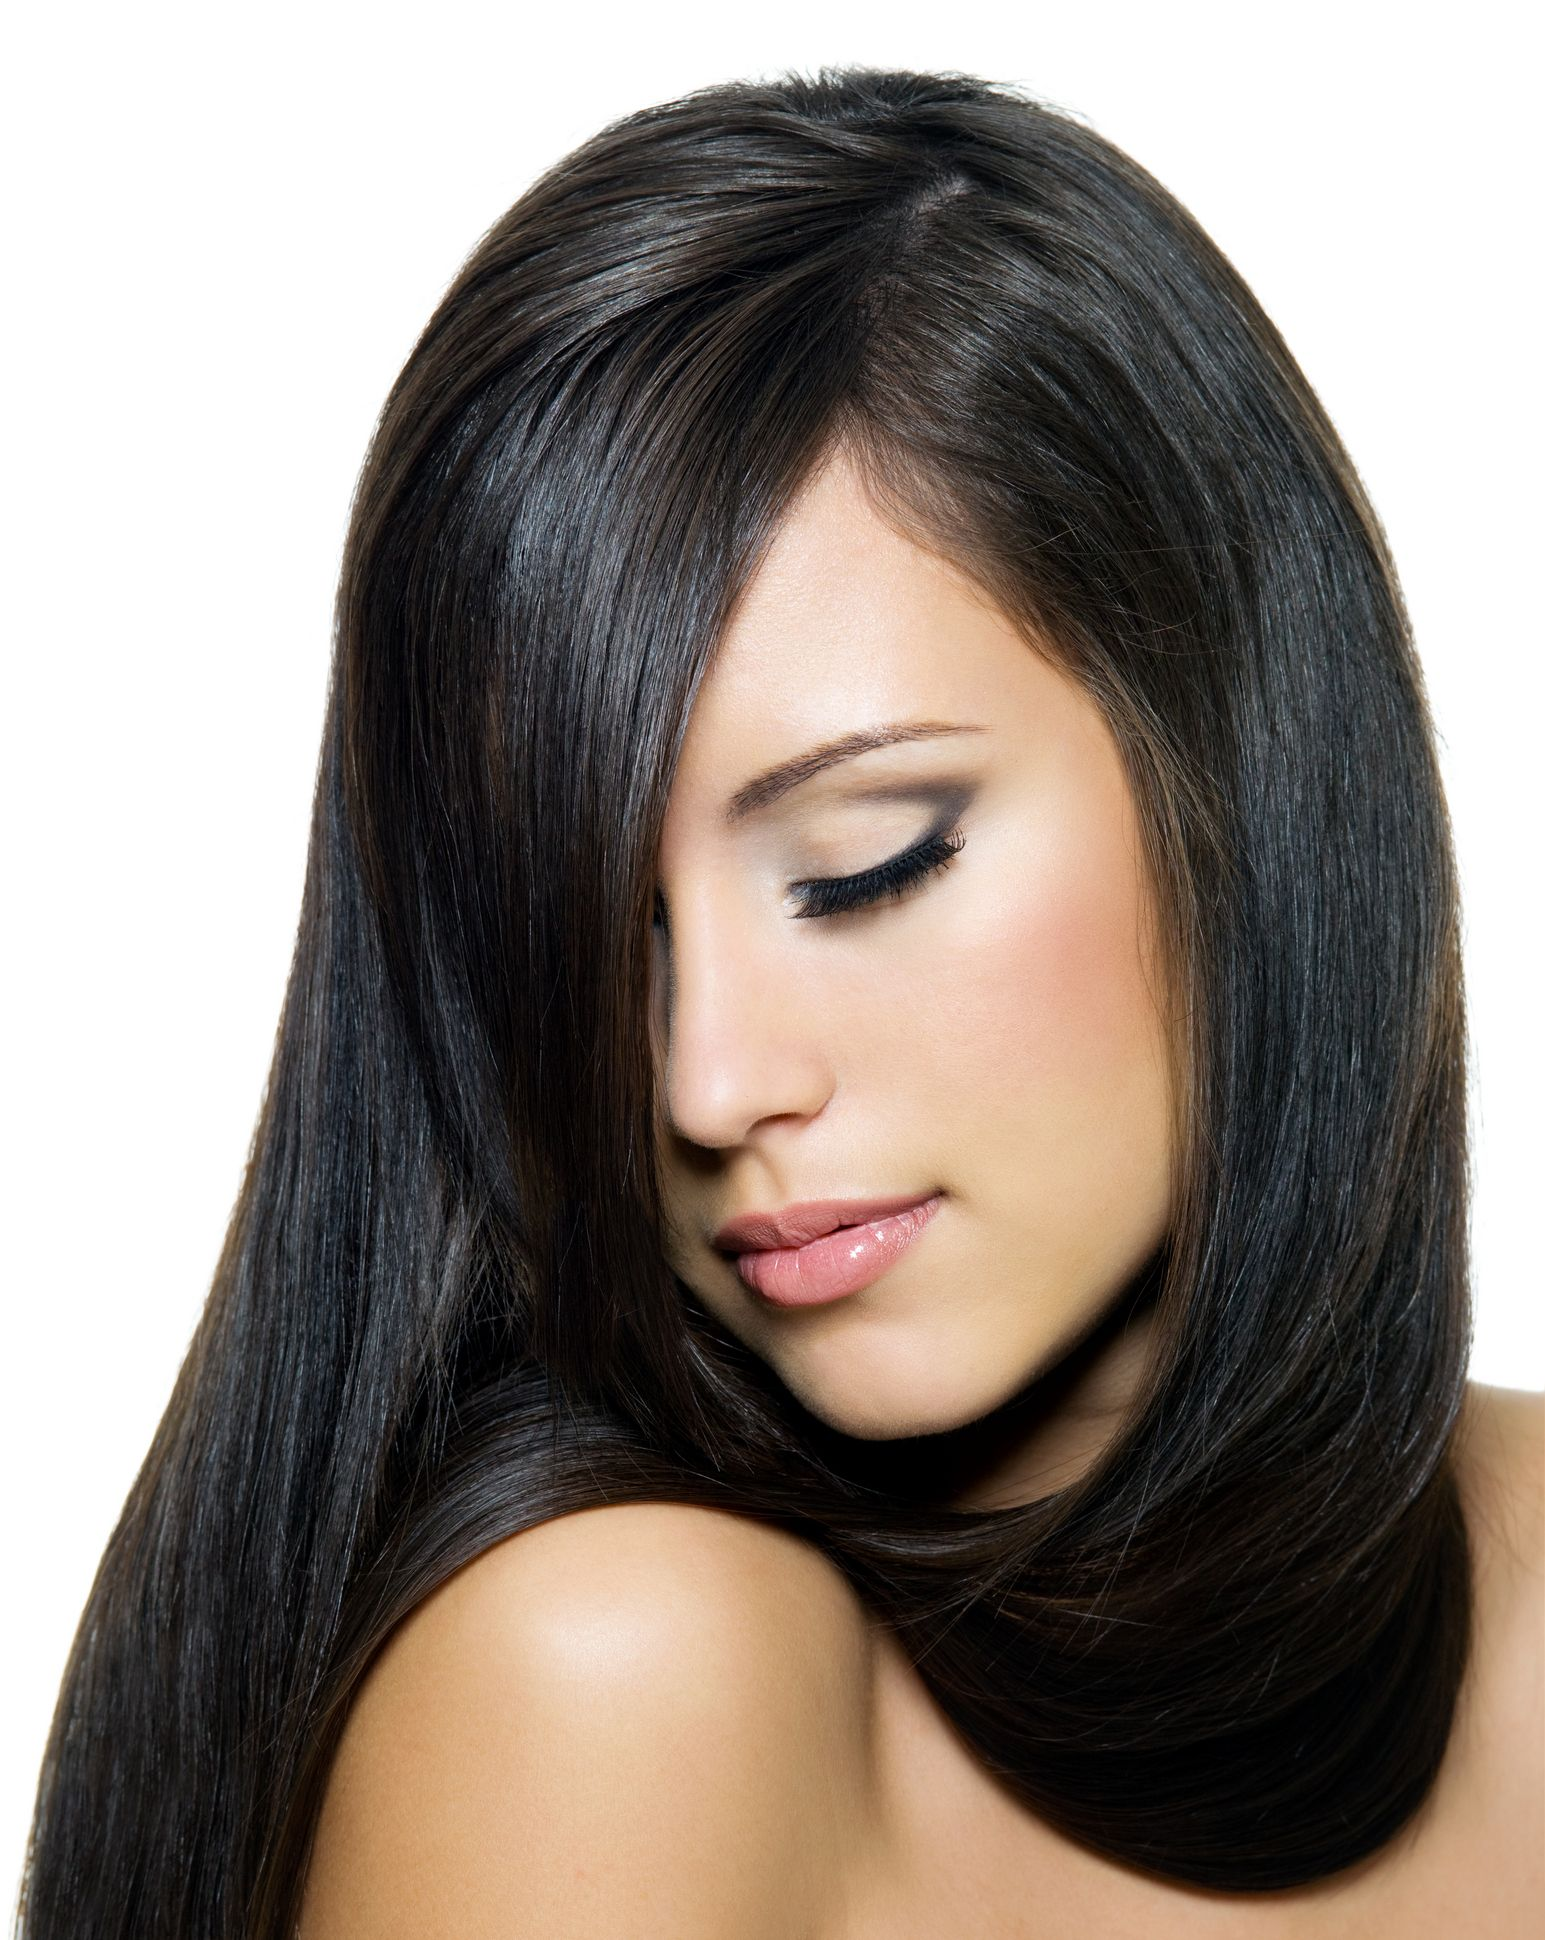 Silk oil of morocco argan hair care infused with certified